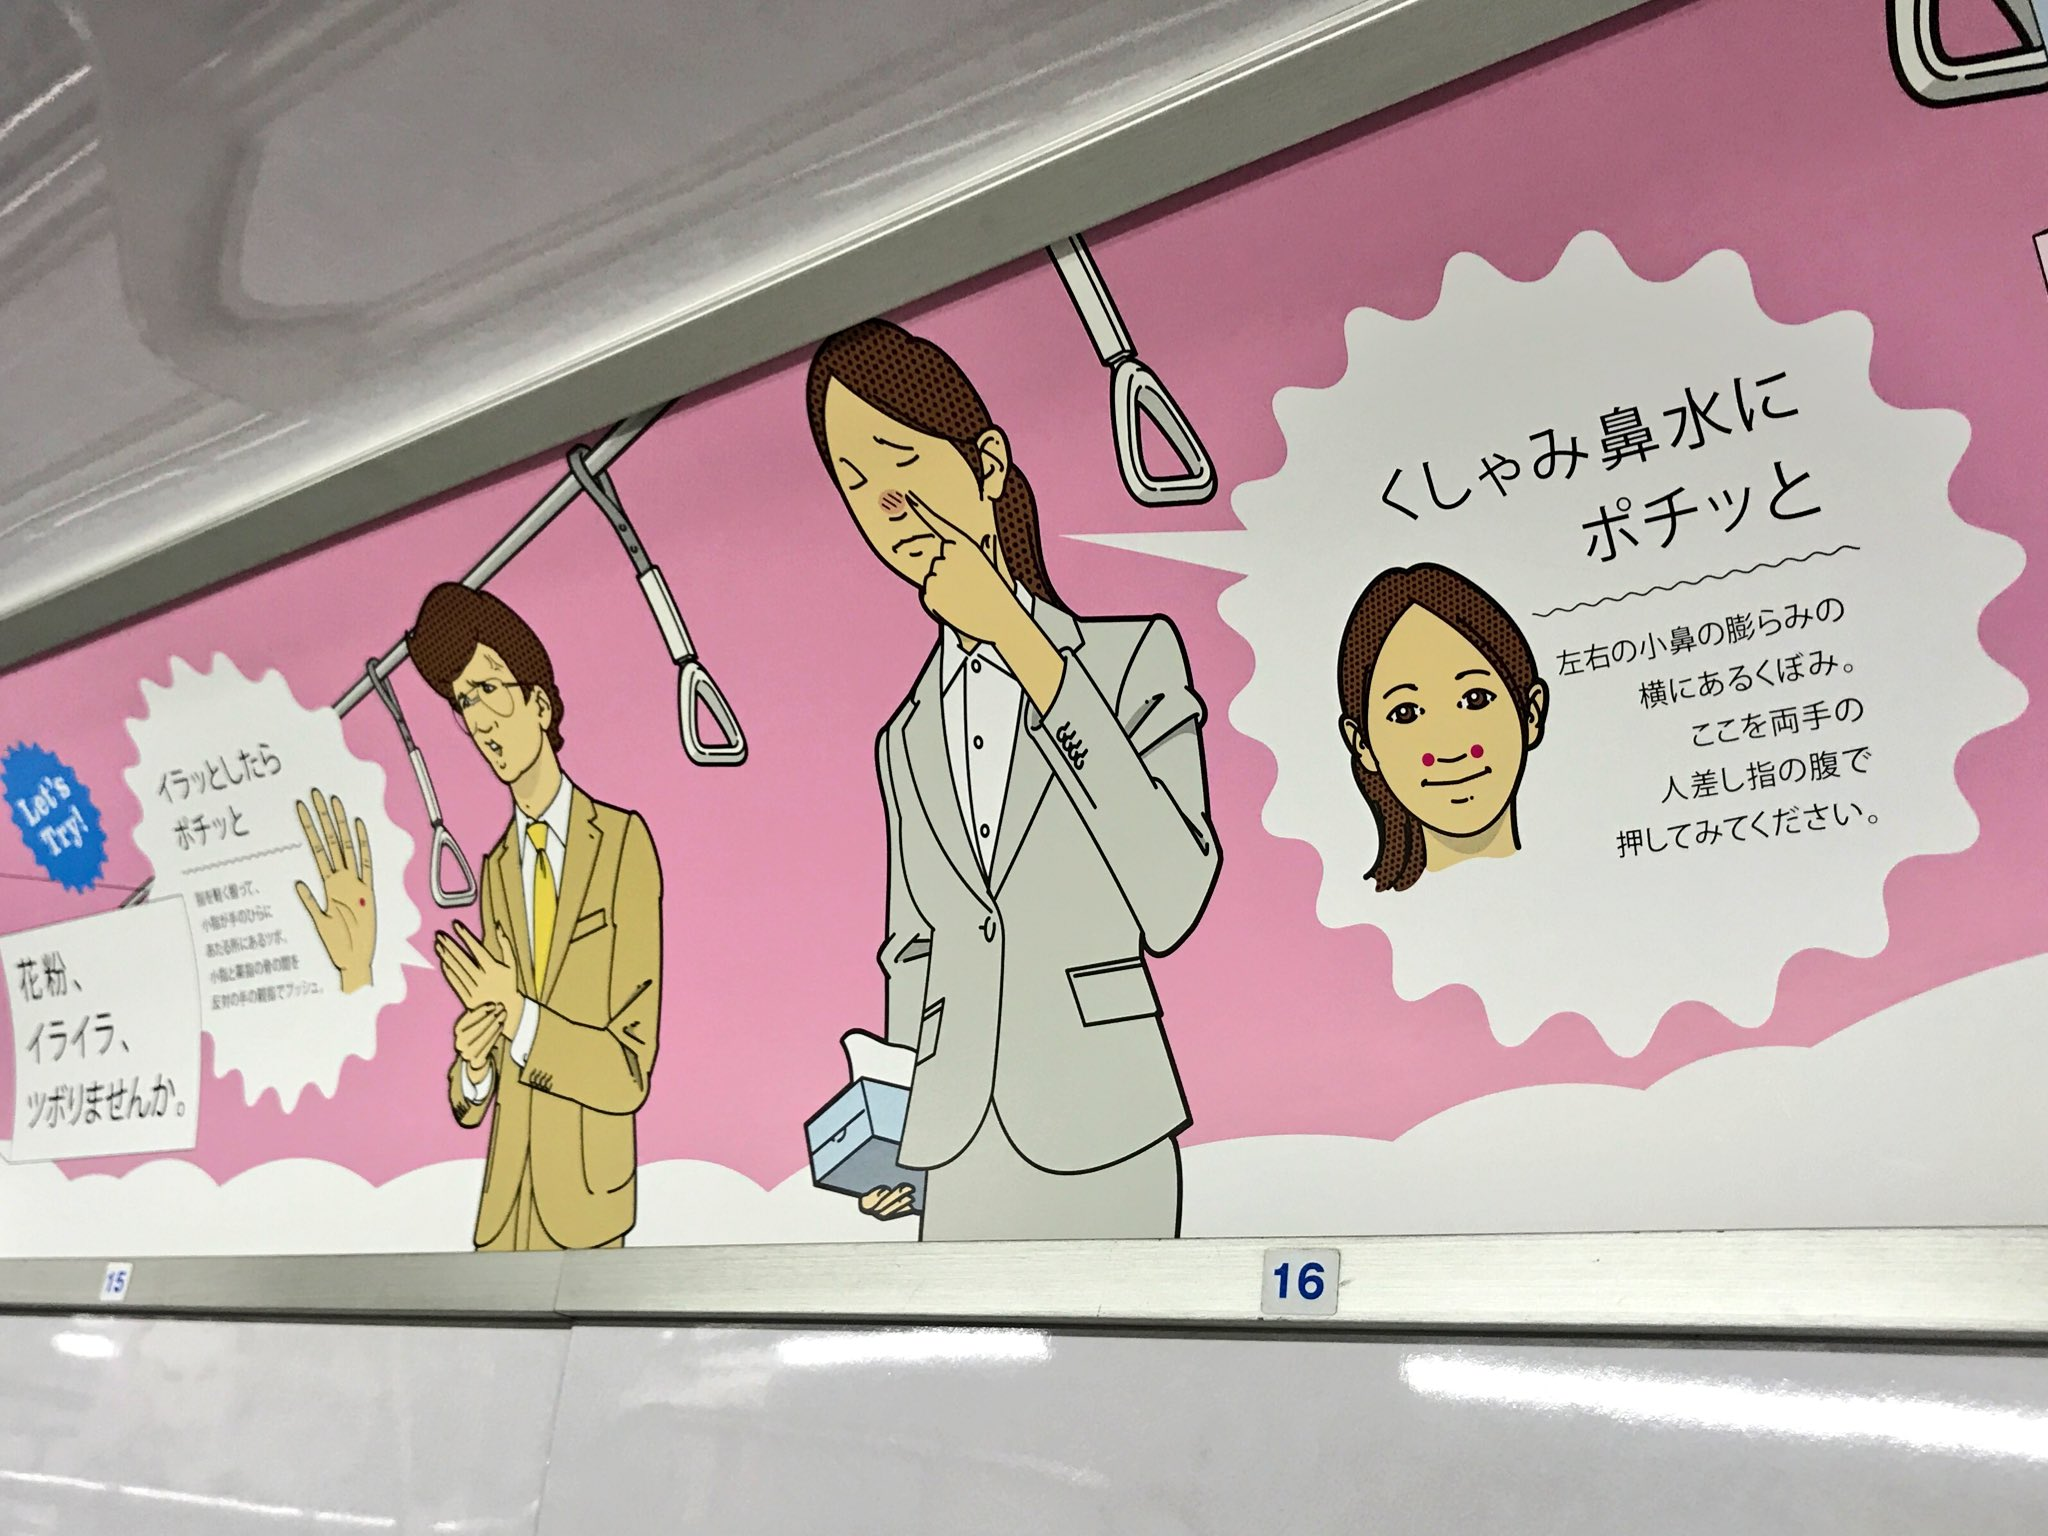 I'll miss the Tokyo subway how to be polite signs https://t.co/PkEuIiRsji